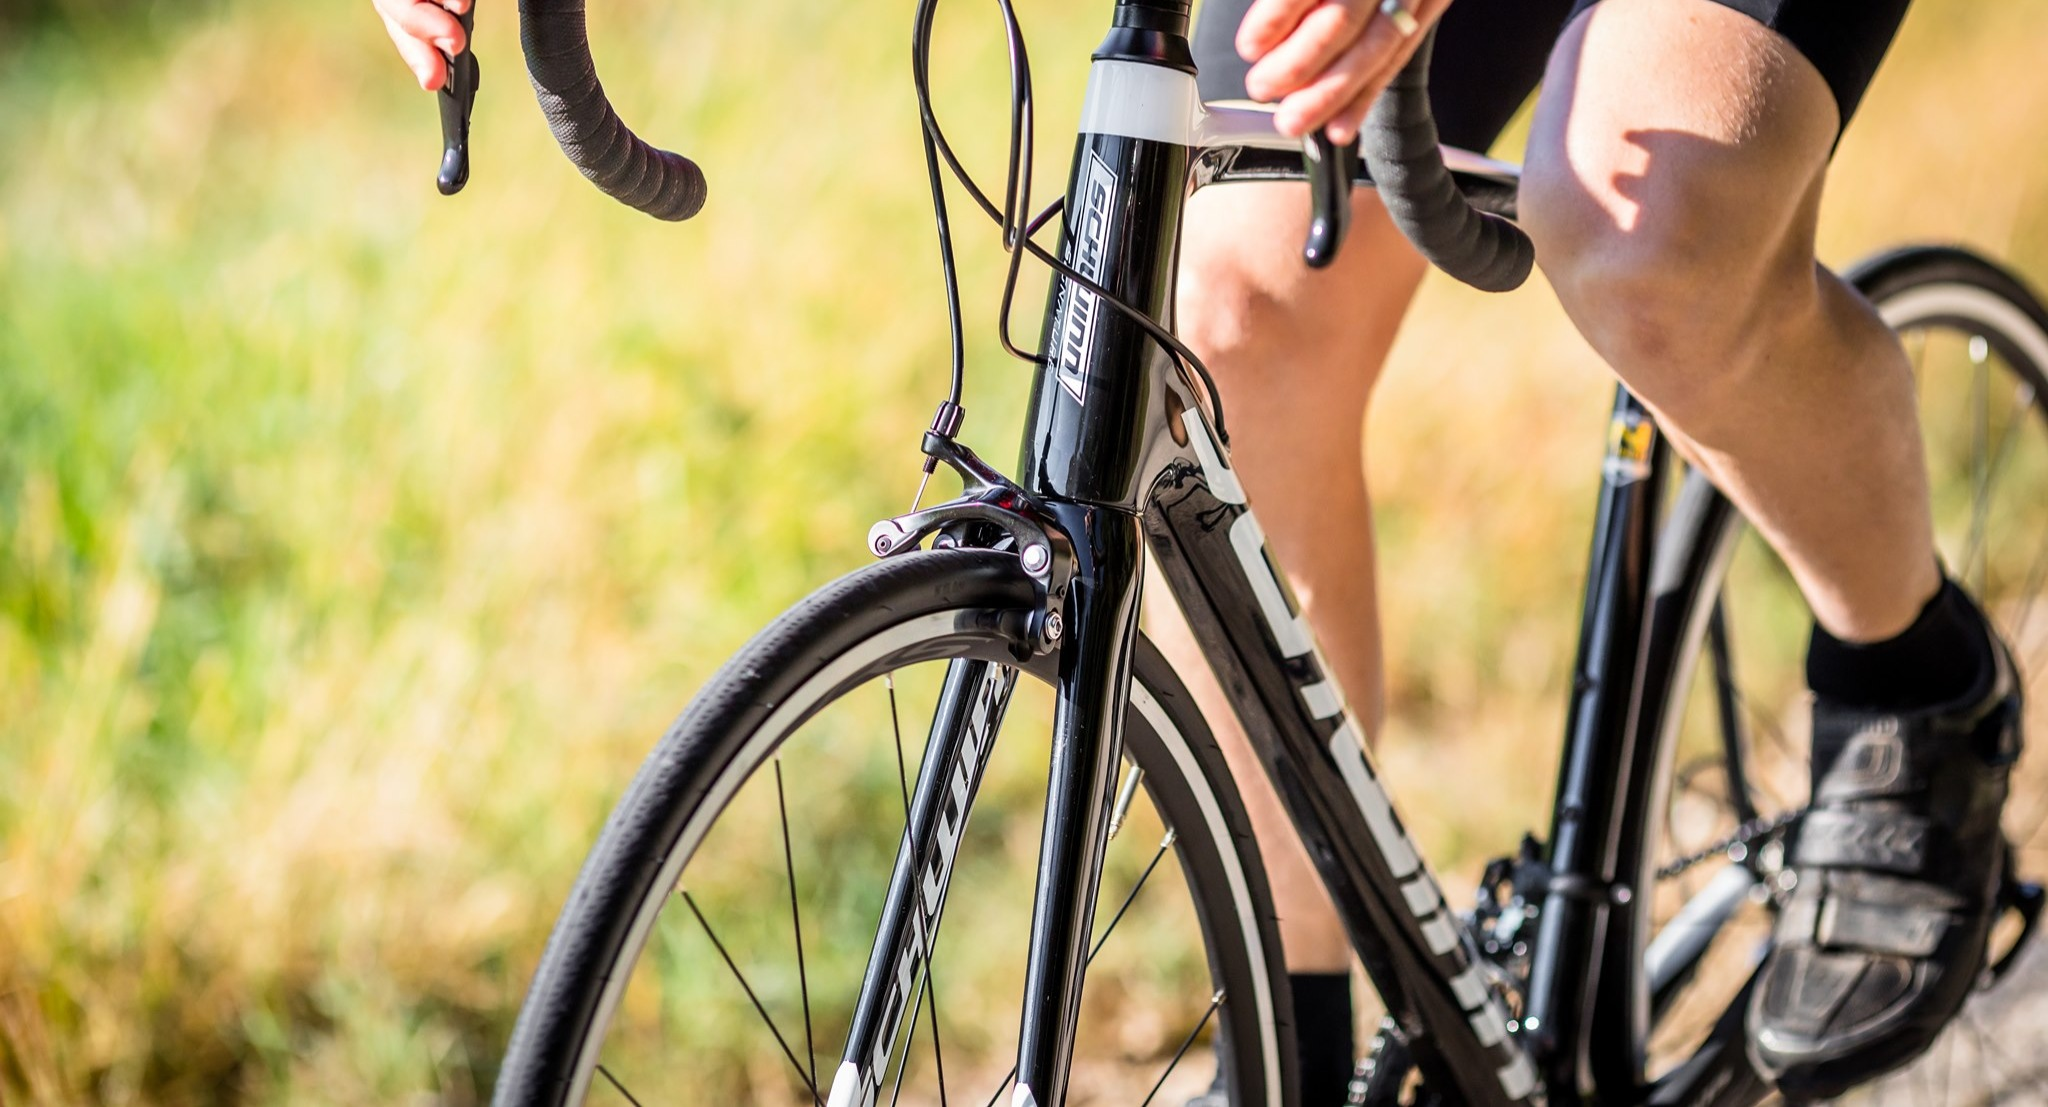 Take the fast way on Schwinn's Fastback Carbon